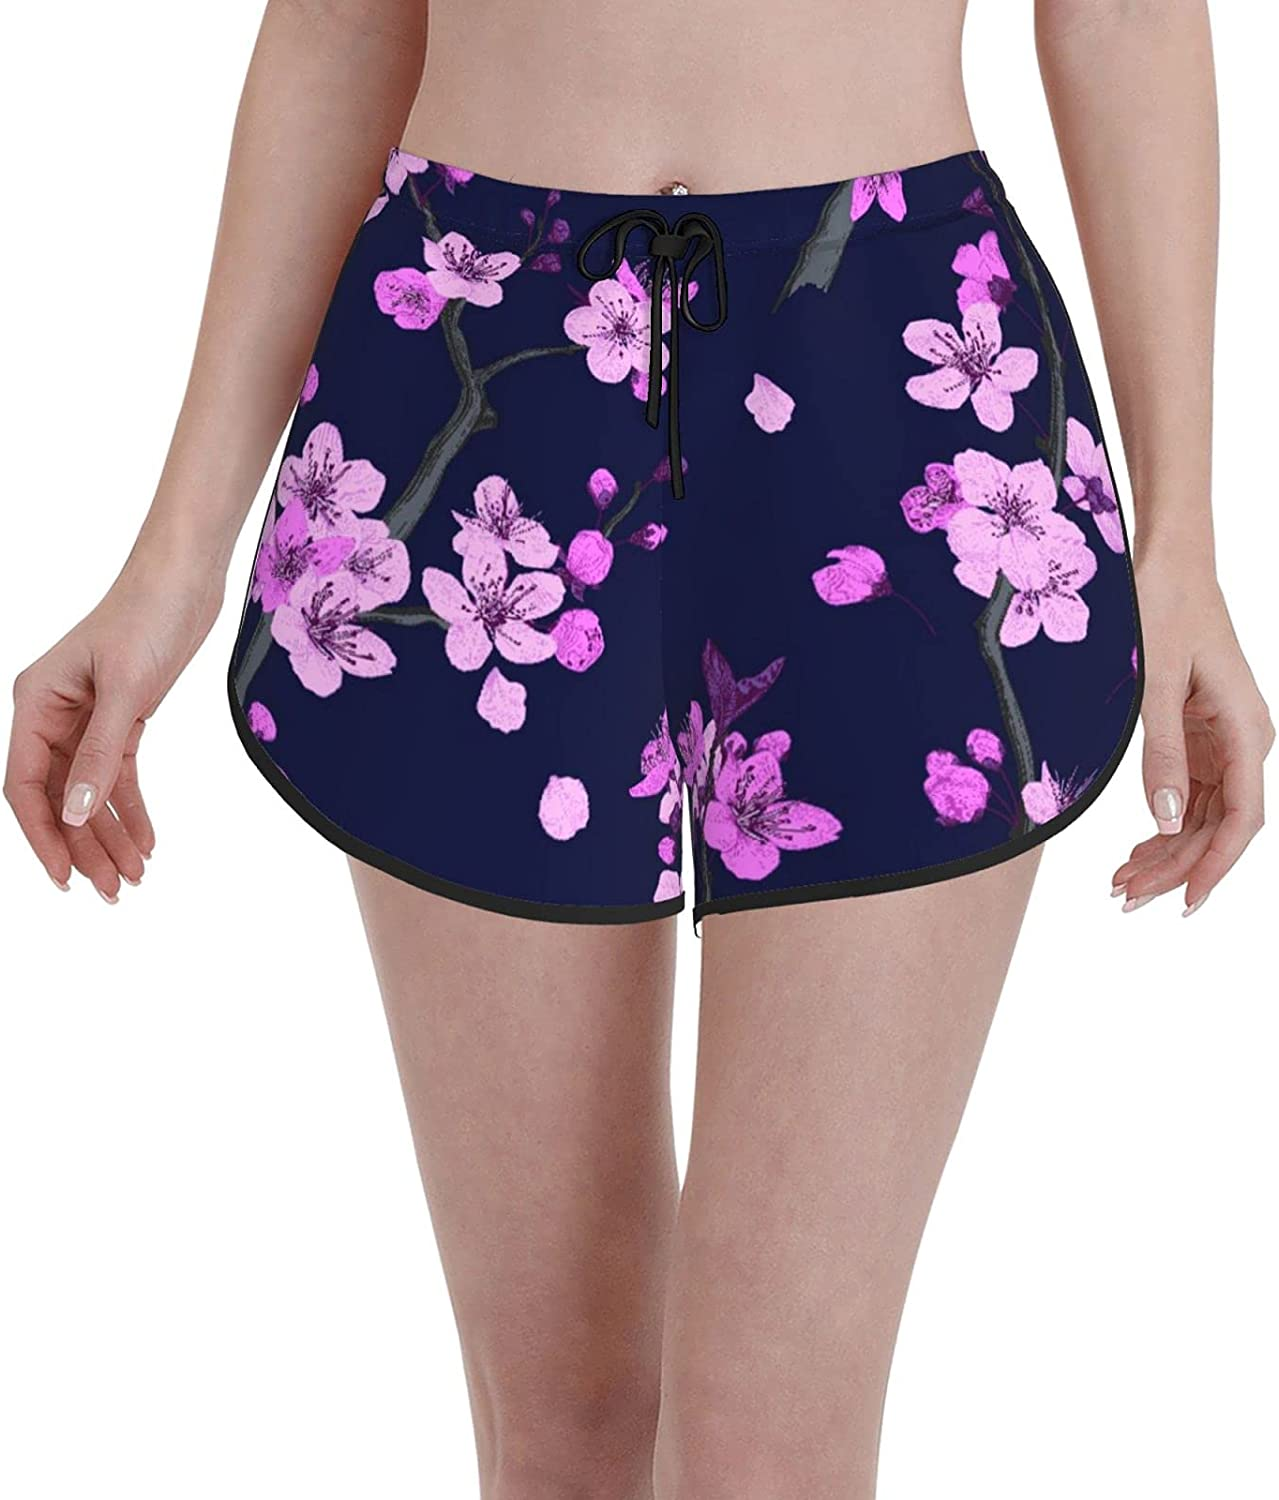 Janrely Casual Board Max 83% OFF Shorts security for Women Trunks We Swim Beach Girls